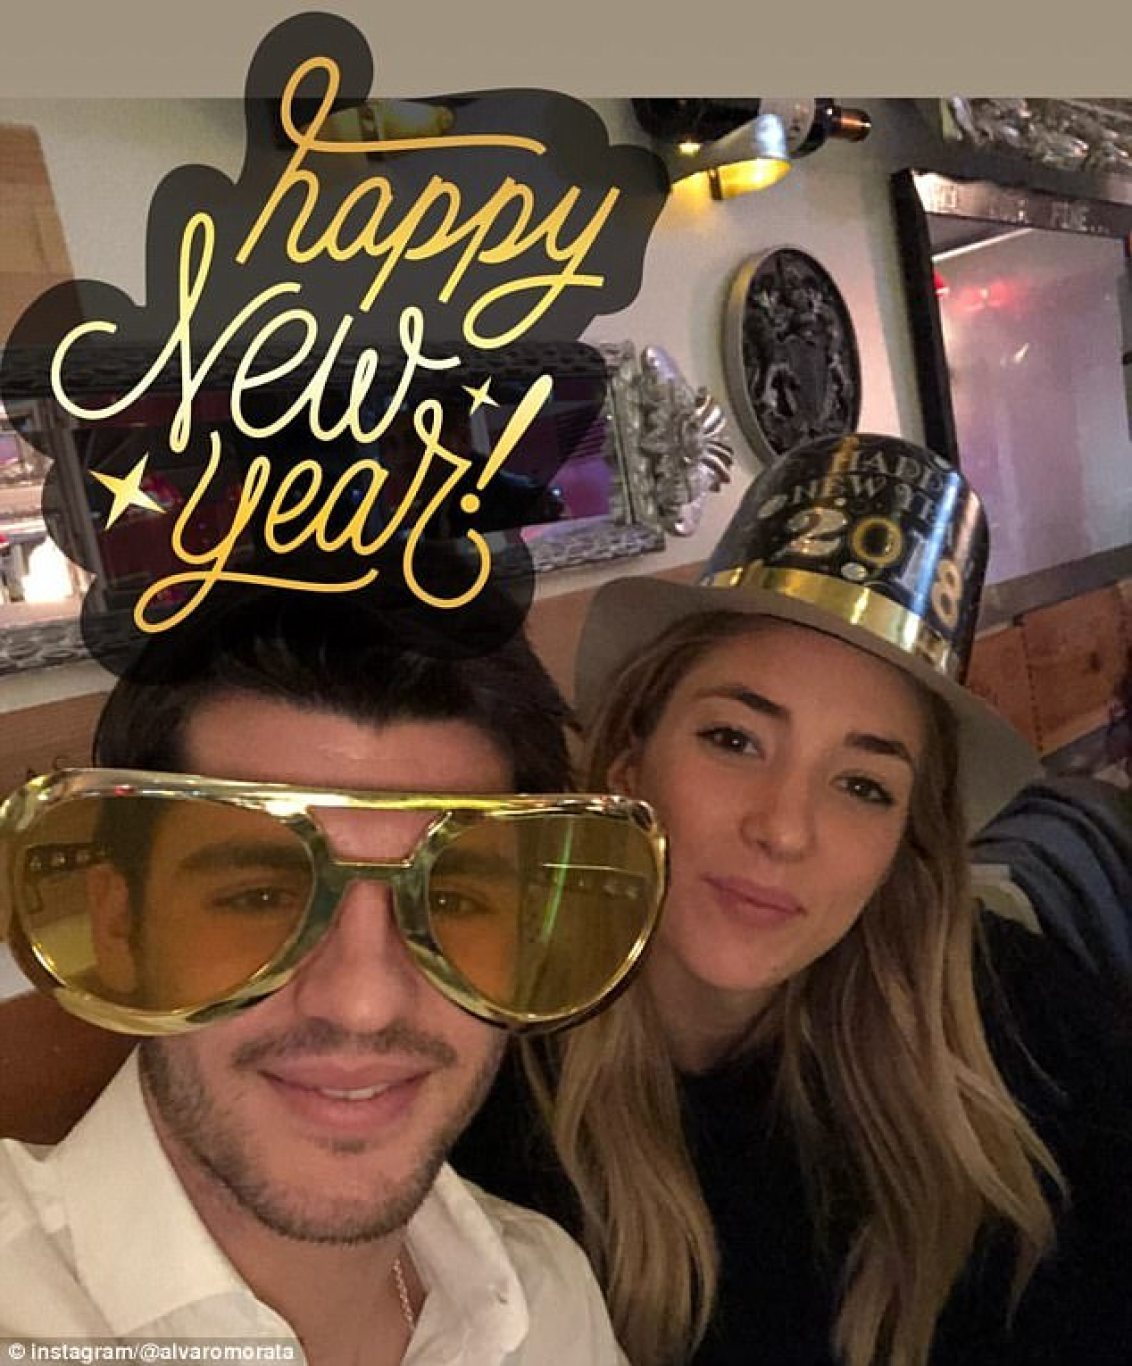 Chelsea strikerAlvaro Morata wore his party prop - a pair of novelty, oversized, golden glasses